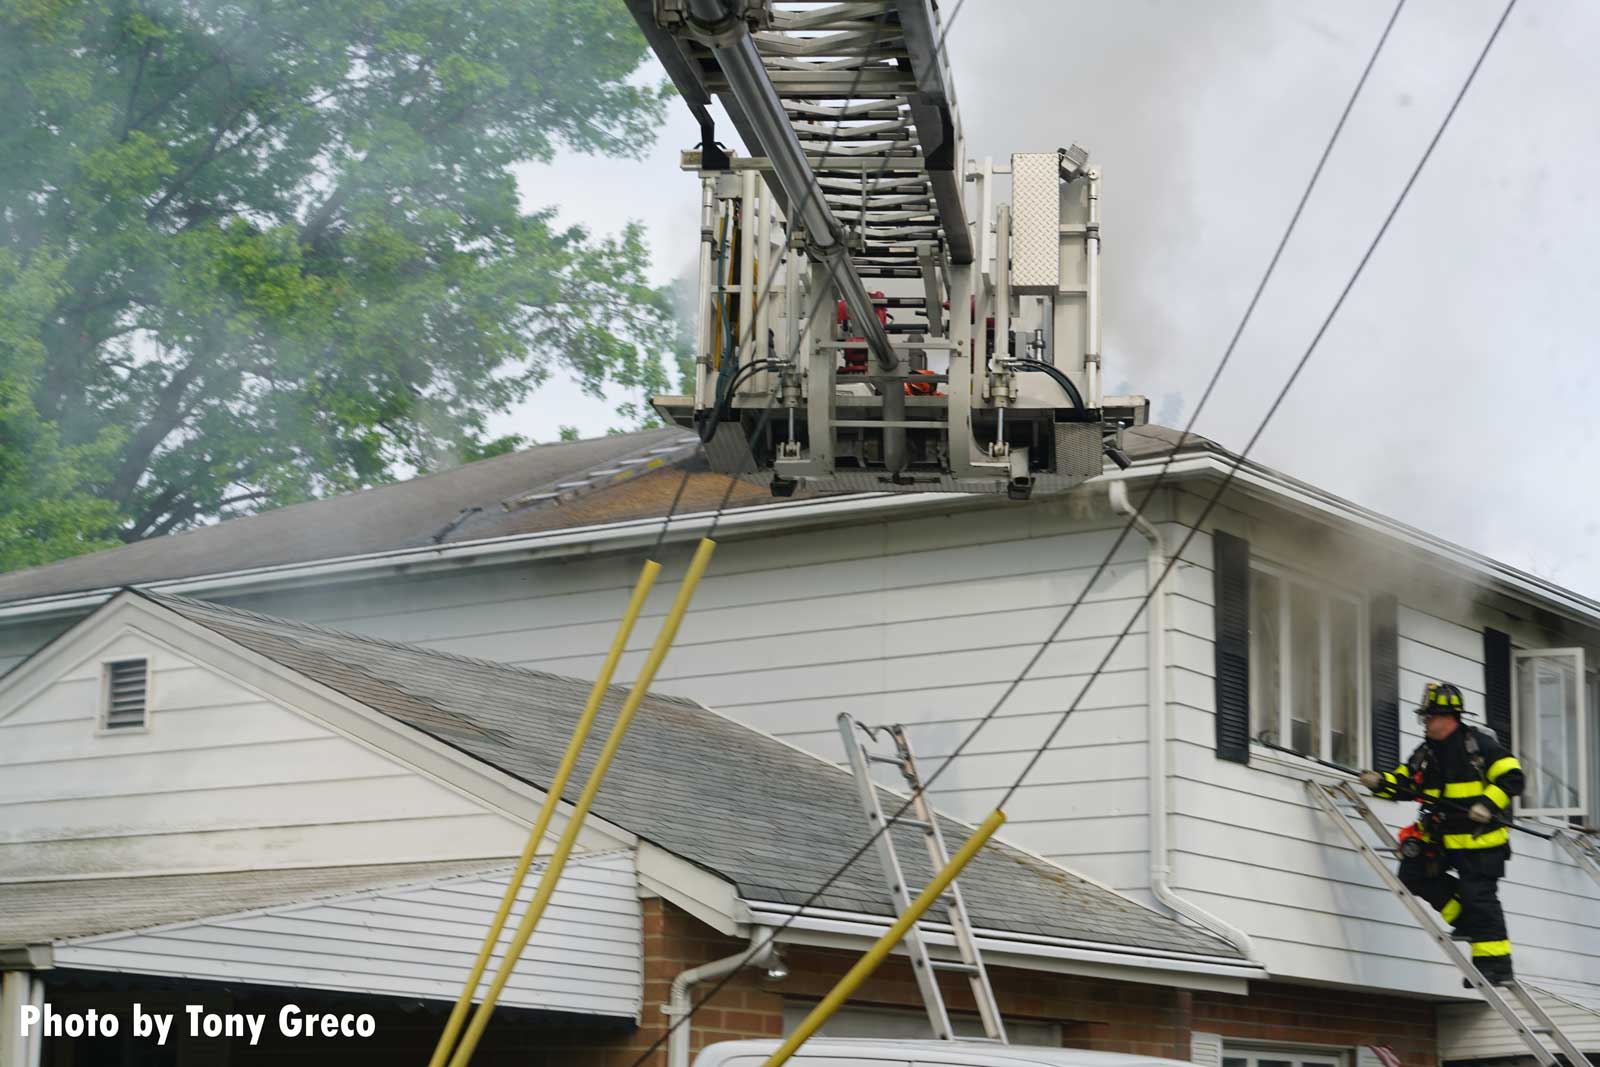 A tower ladder bucket with firefighters on ladders at the house fire